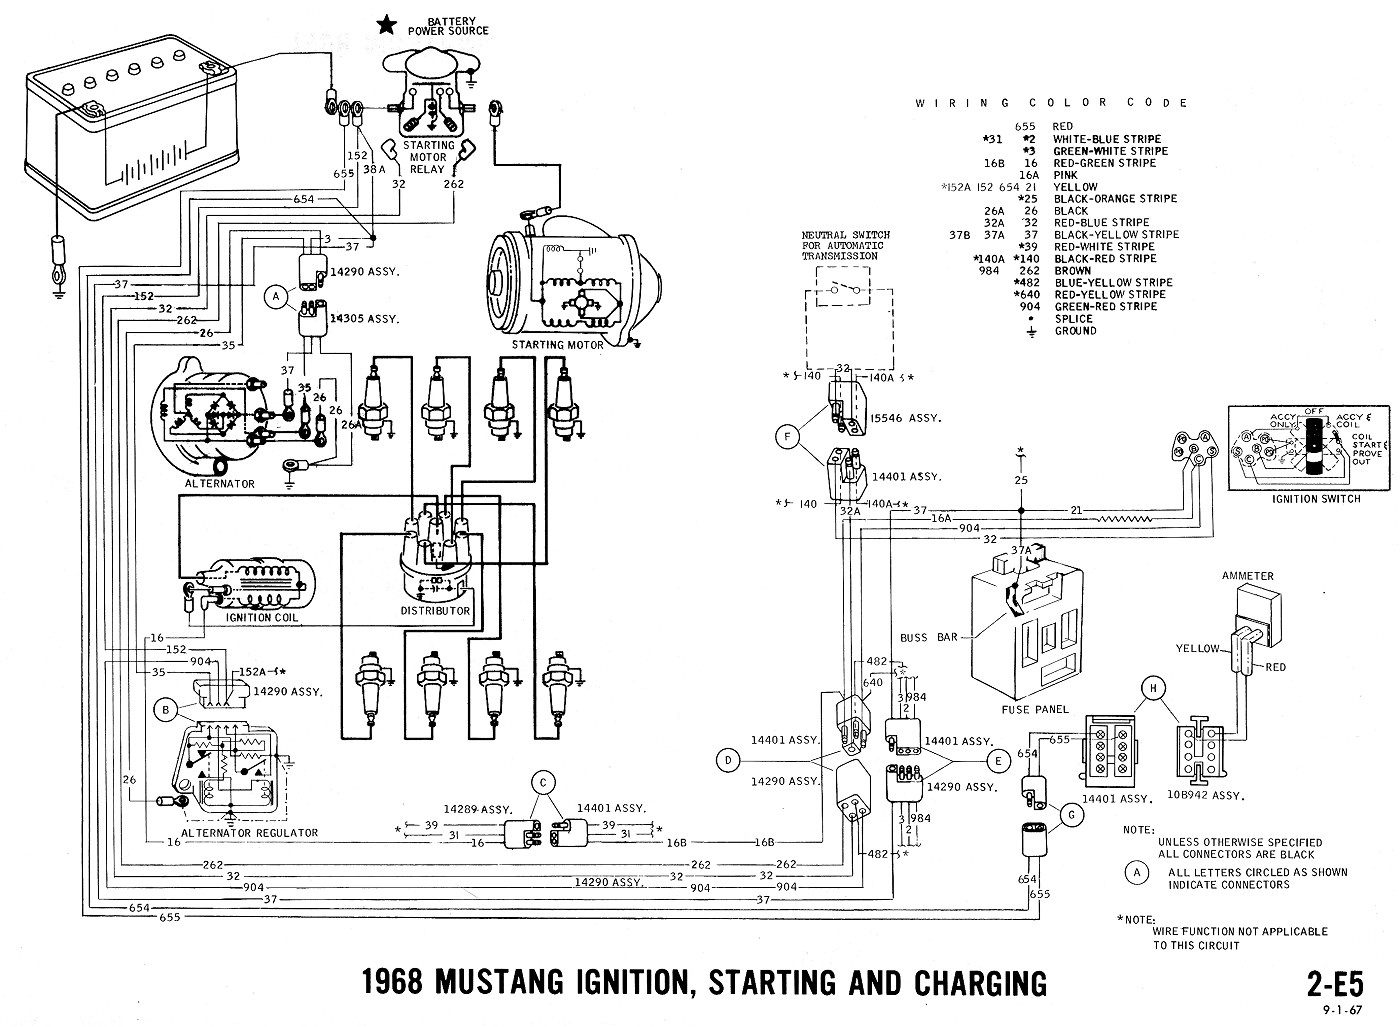 E5 1968 mustang wiring diagrams evolving software 74 Mustang at panicattacktreatment.co